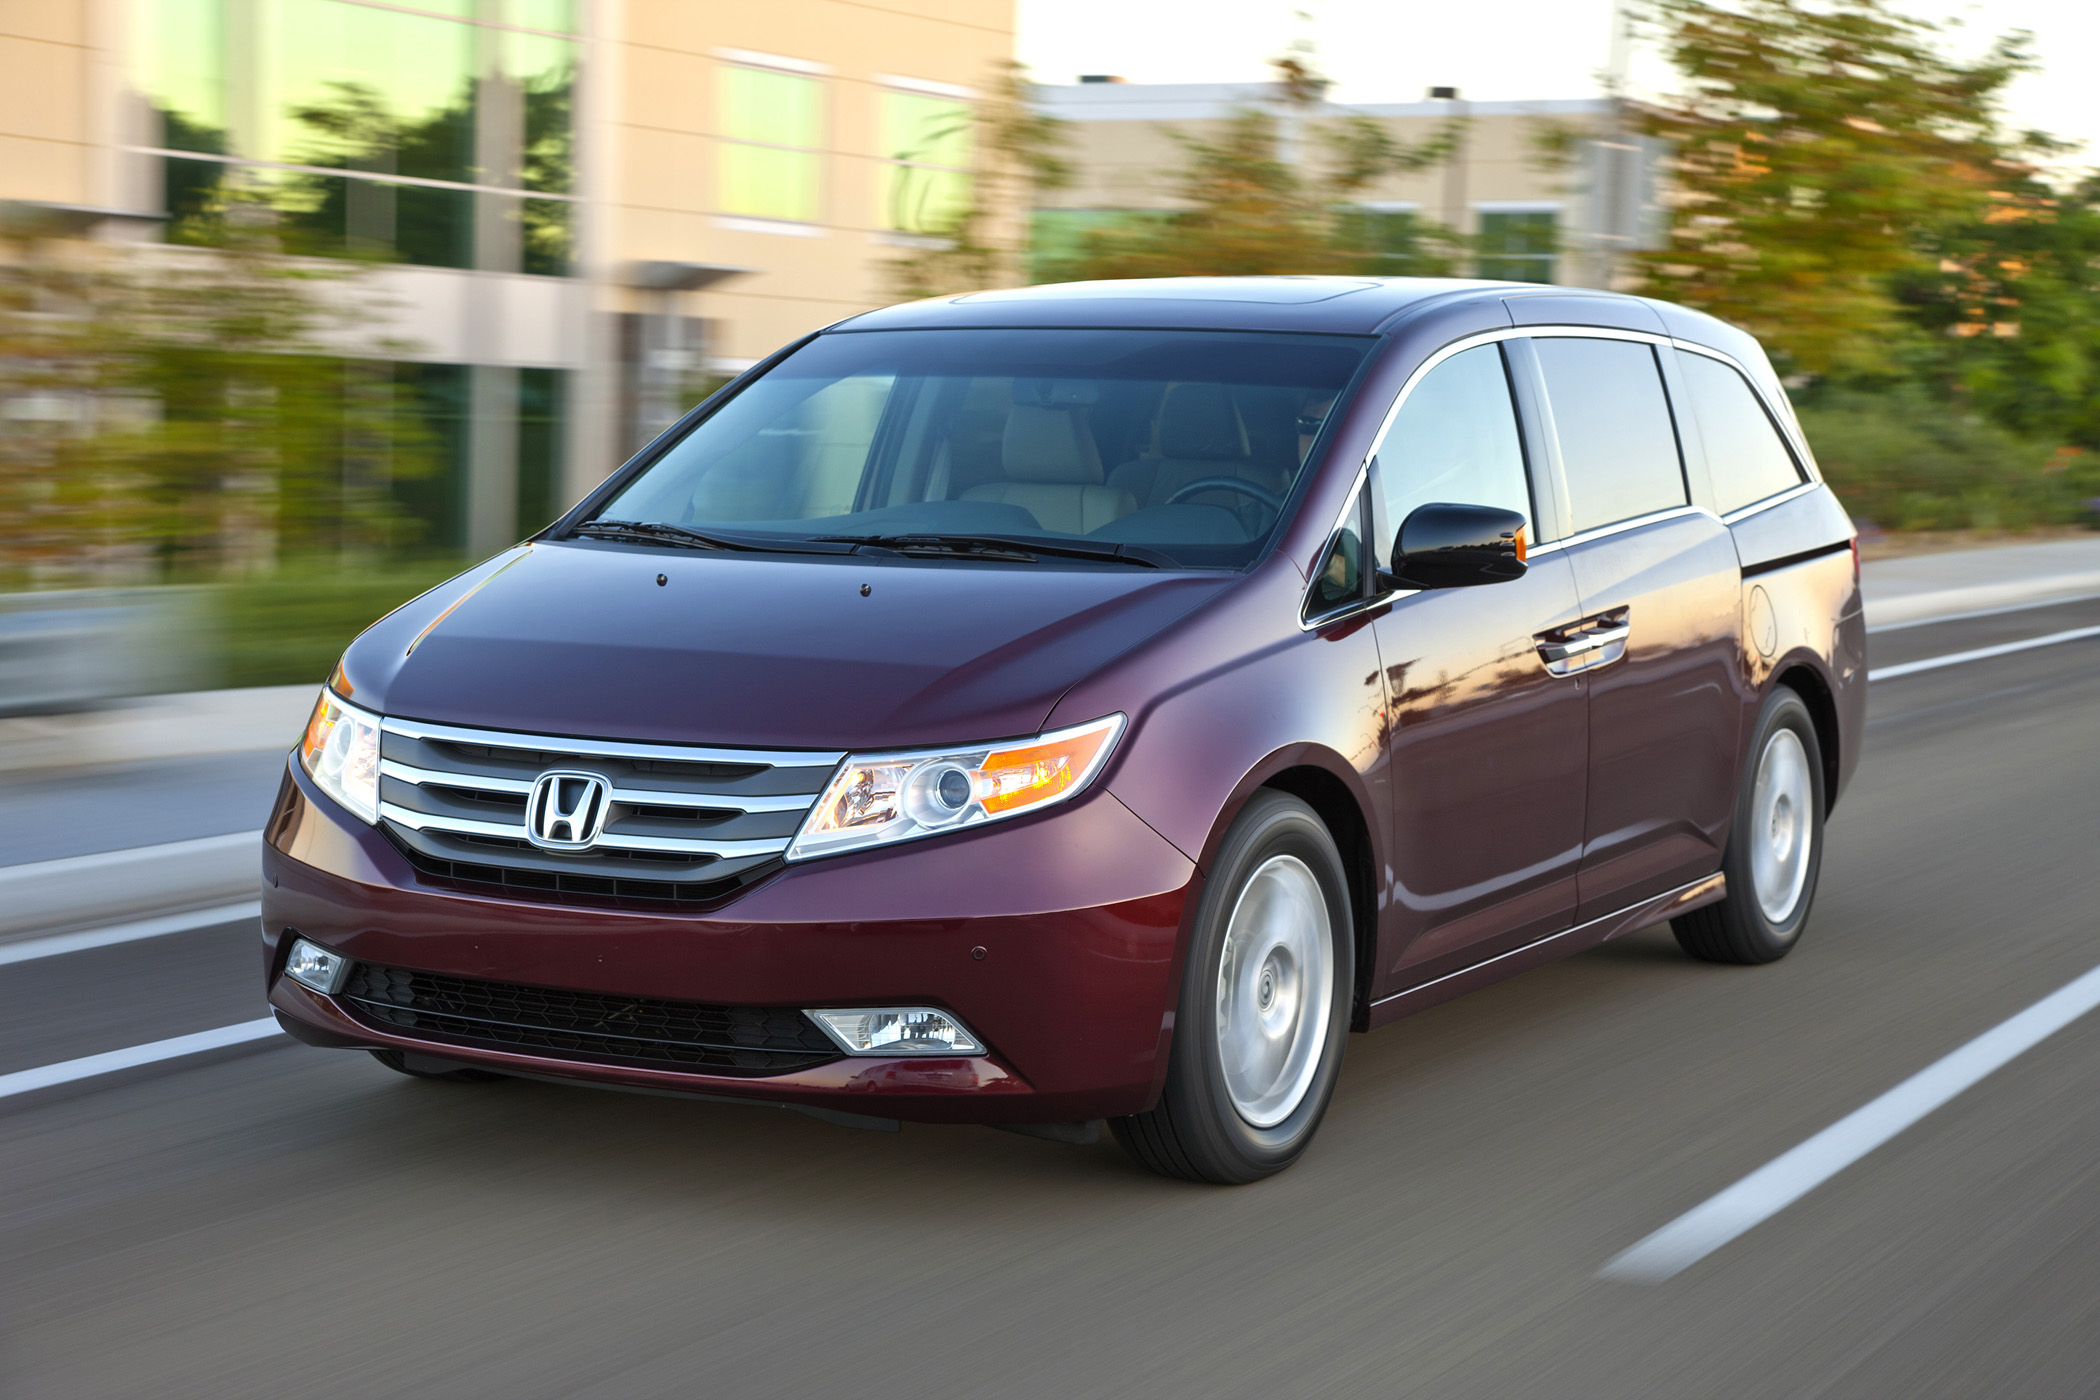 Manufacturer Photo: The Completely Redesigned Honda Odyssey Enters 2011  With A More Distinctive Style,